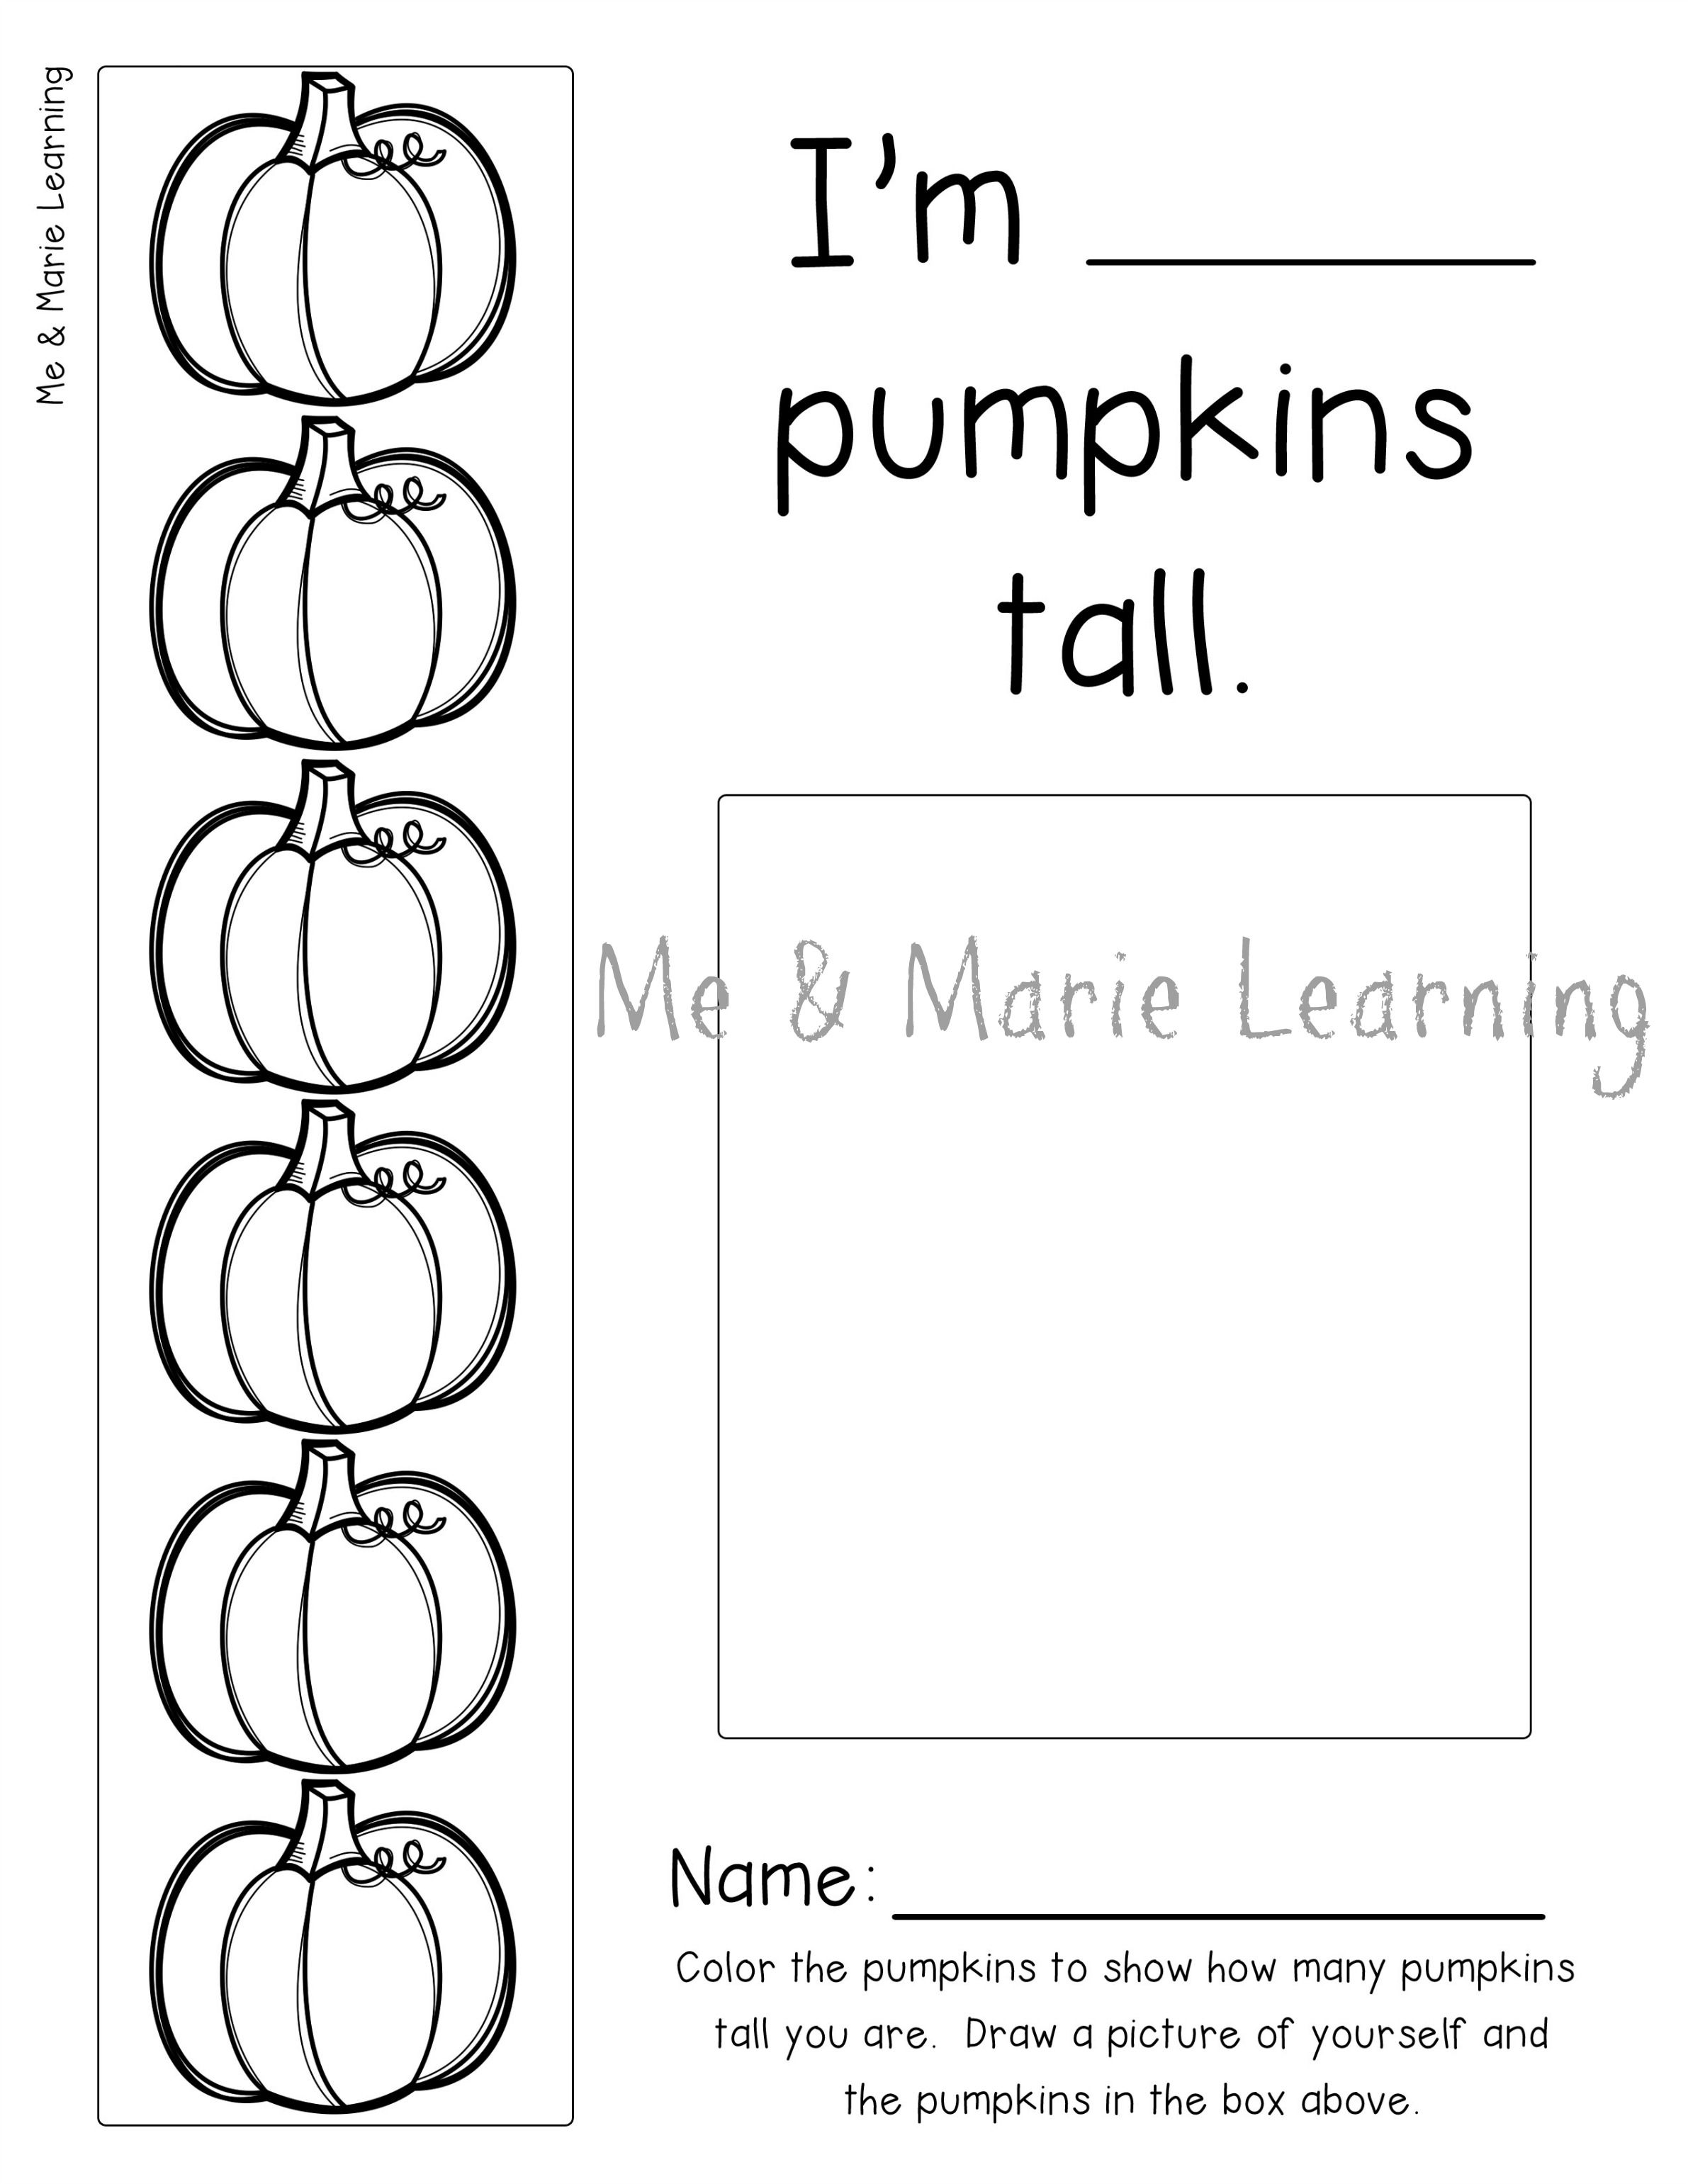 How Many Pumpkins Tall Preschool Activity